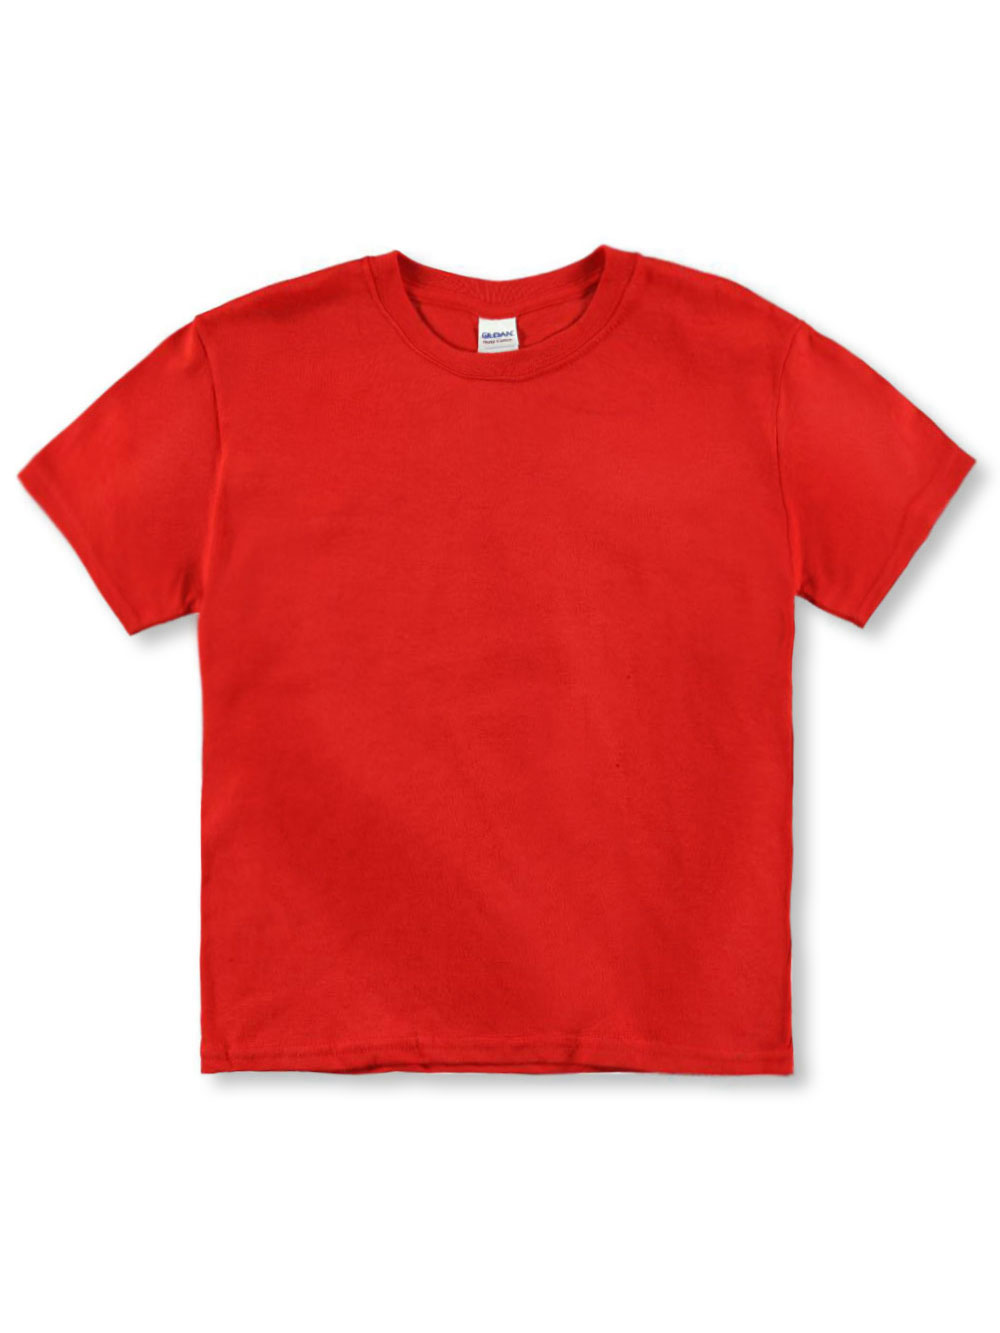 Size Xl T-Shirts for Girls